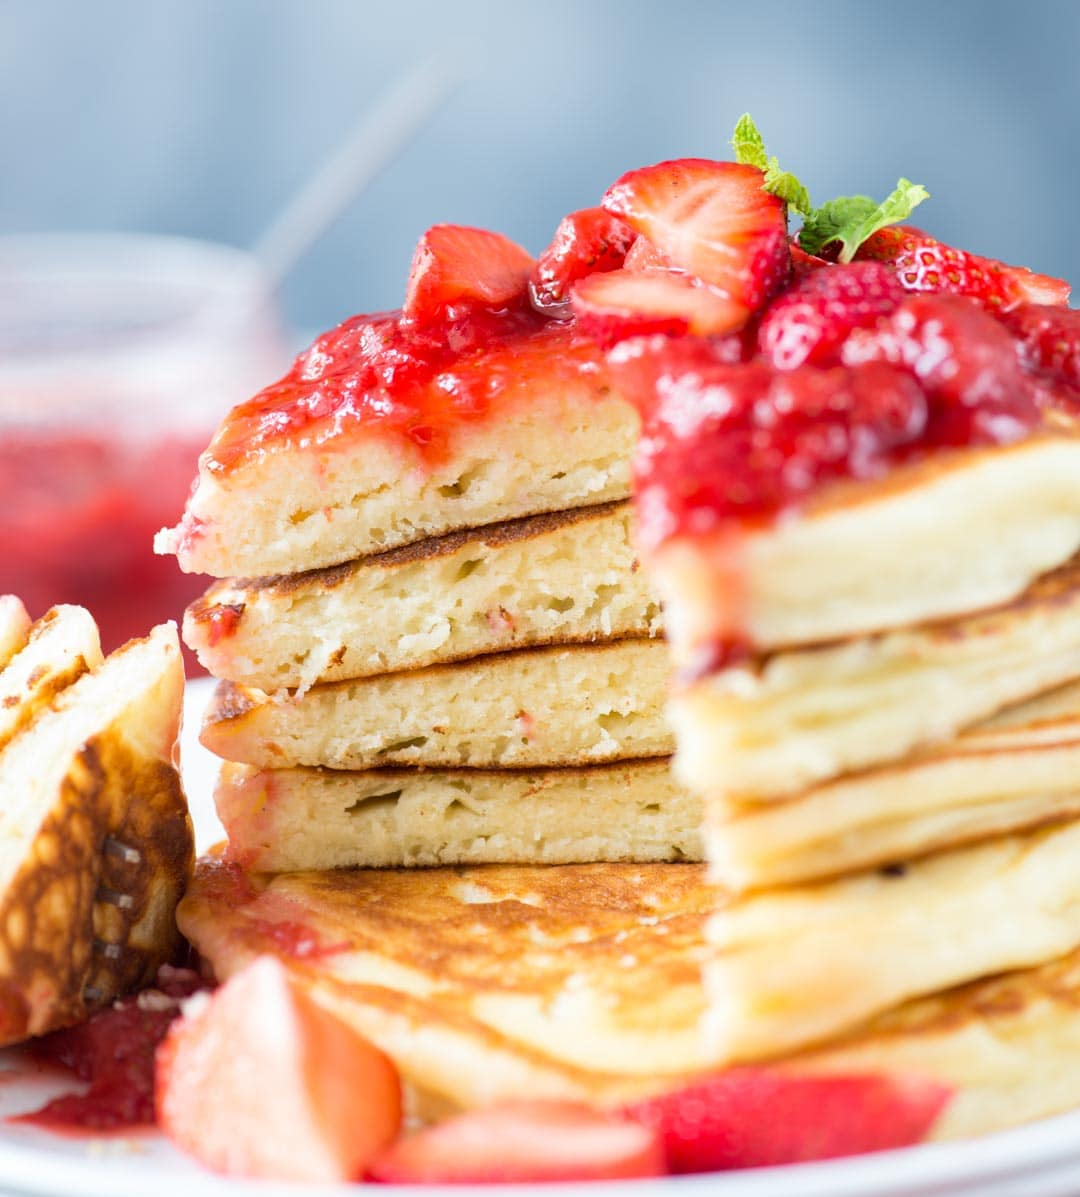 Fluffy Ricotta Pancakes with Strawberry Sauce is super moist Perfect breakfast or for brunch.